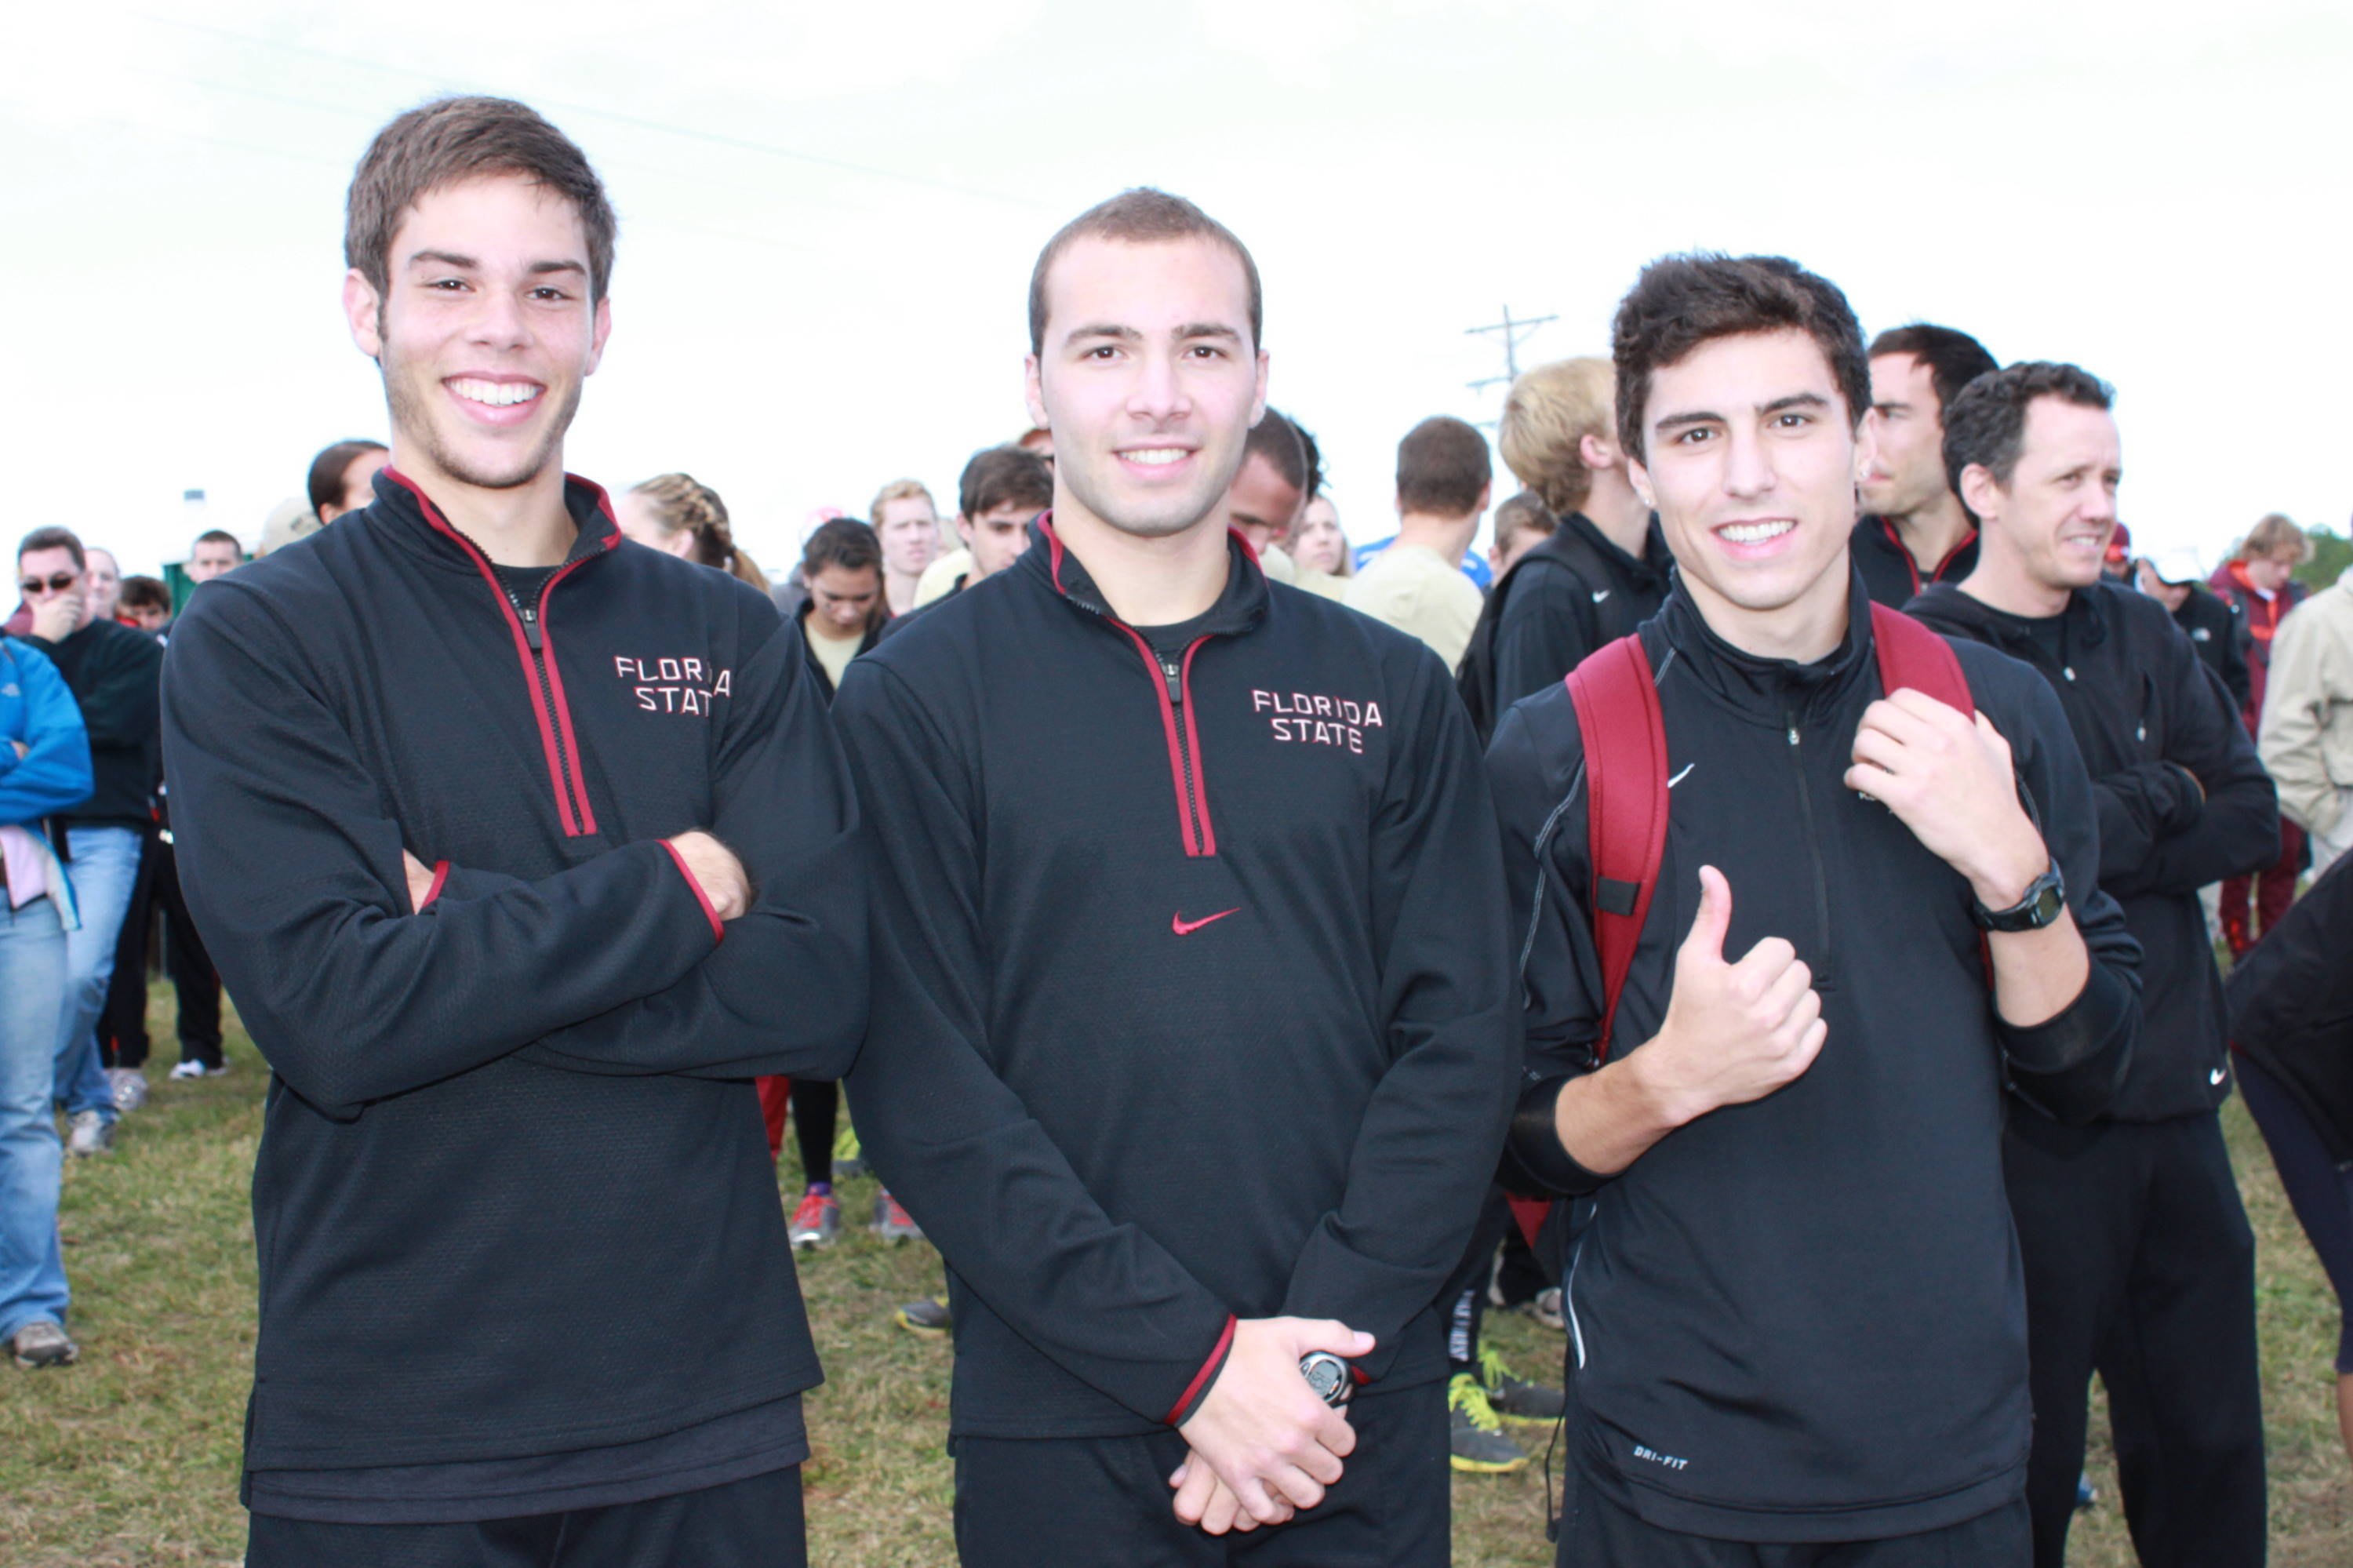 AJ del Valle, left, Jakub Zivec and Wes Rickman have earned ACC Rookie of the Year honors in 2011, 2010 and 2009, respectively.